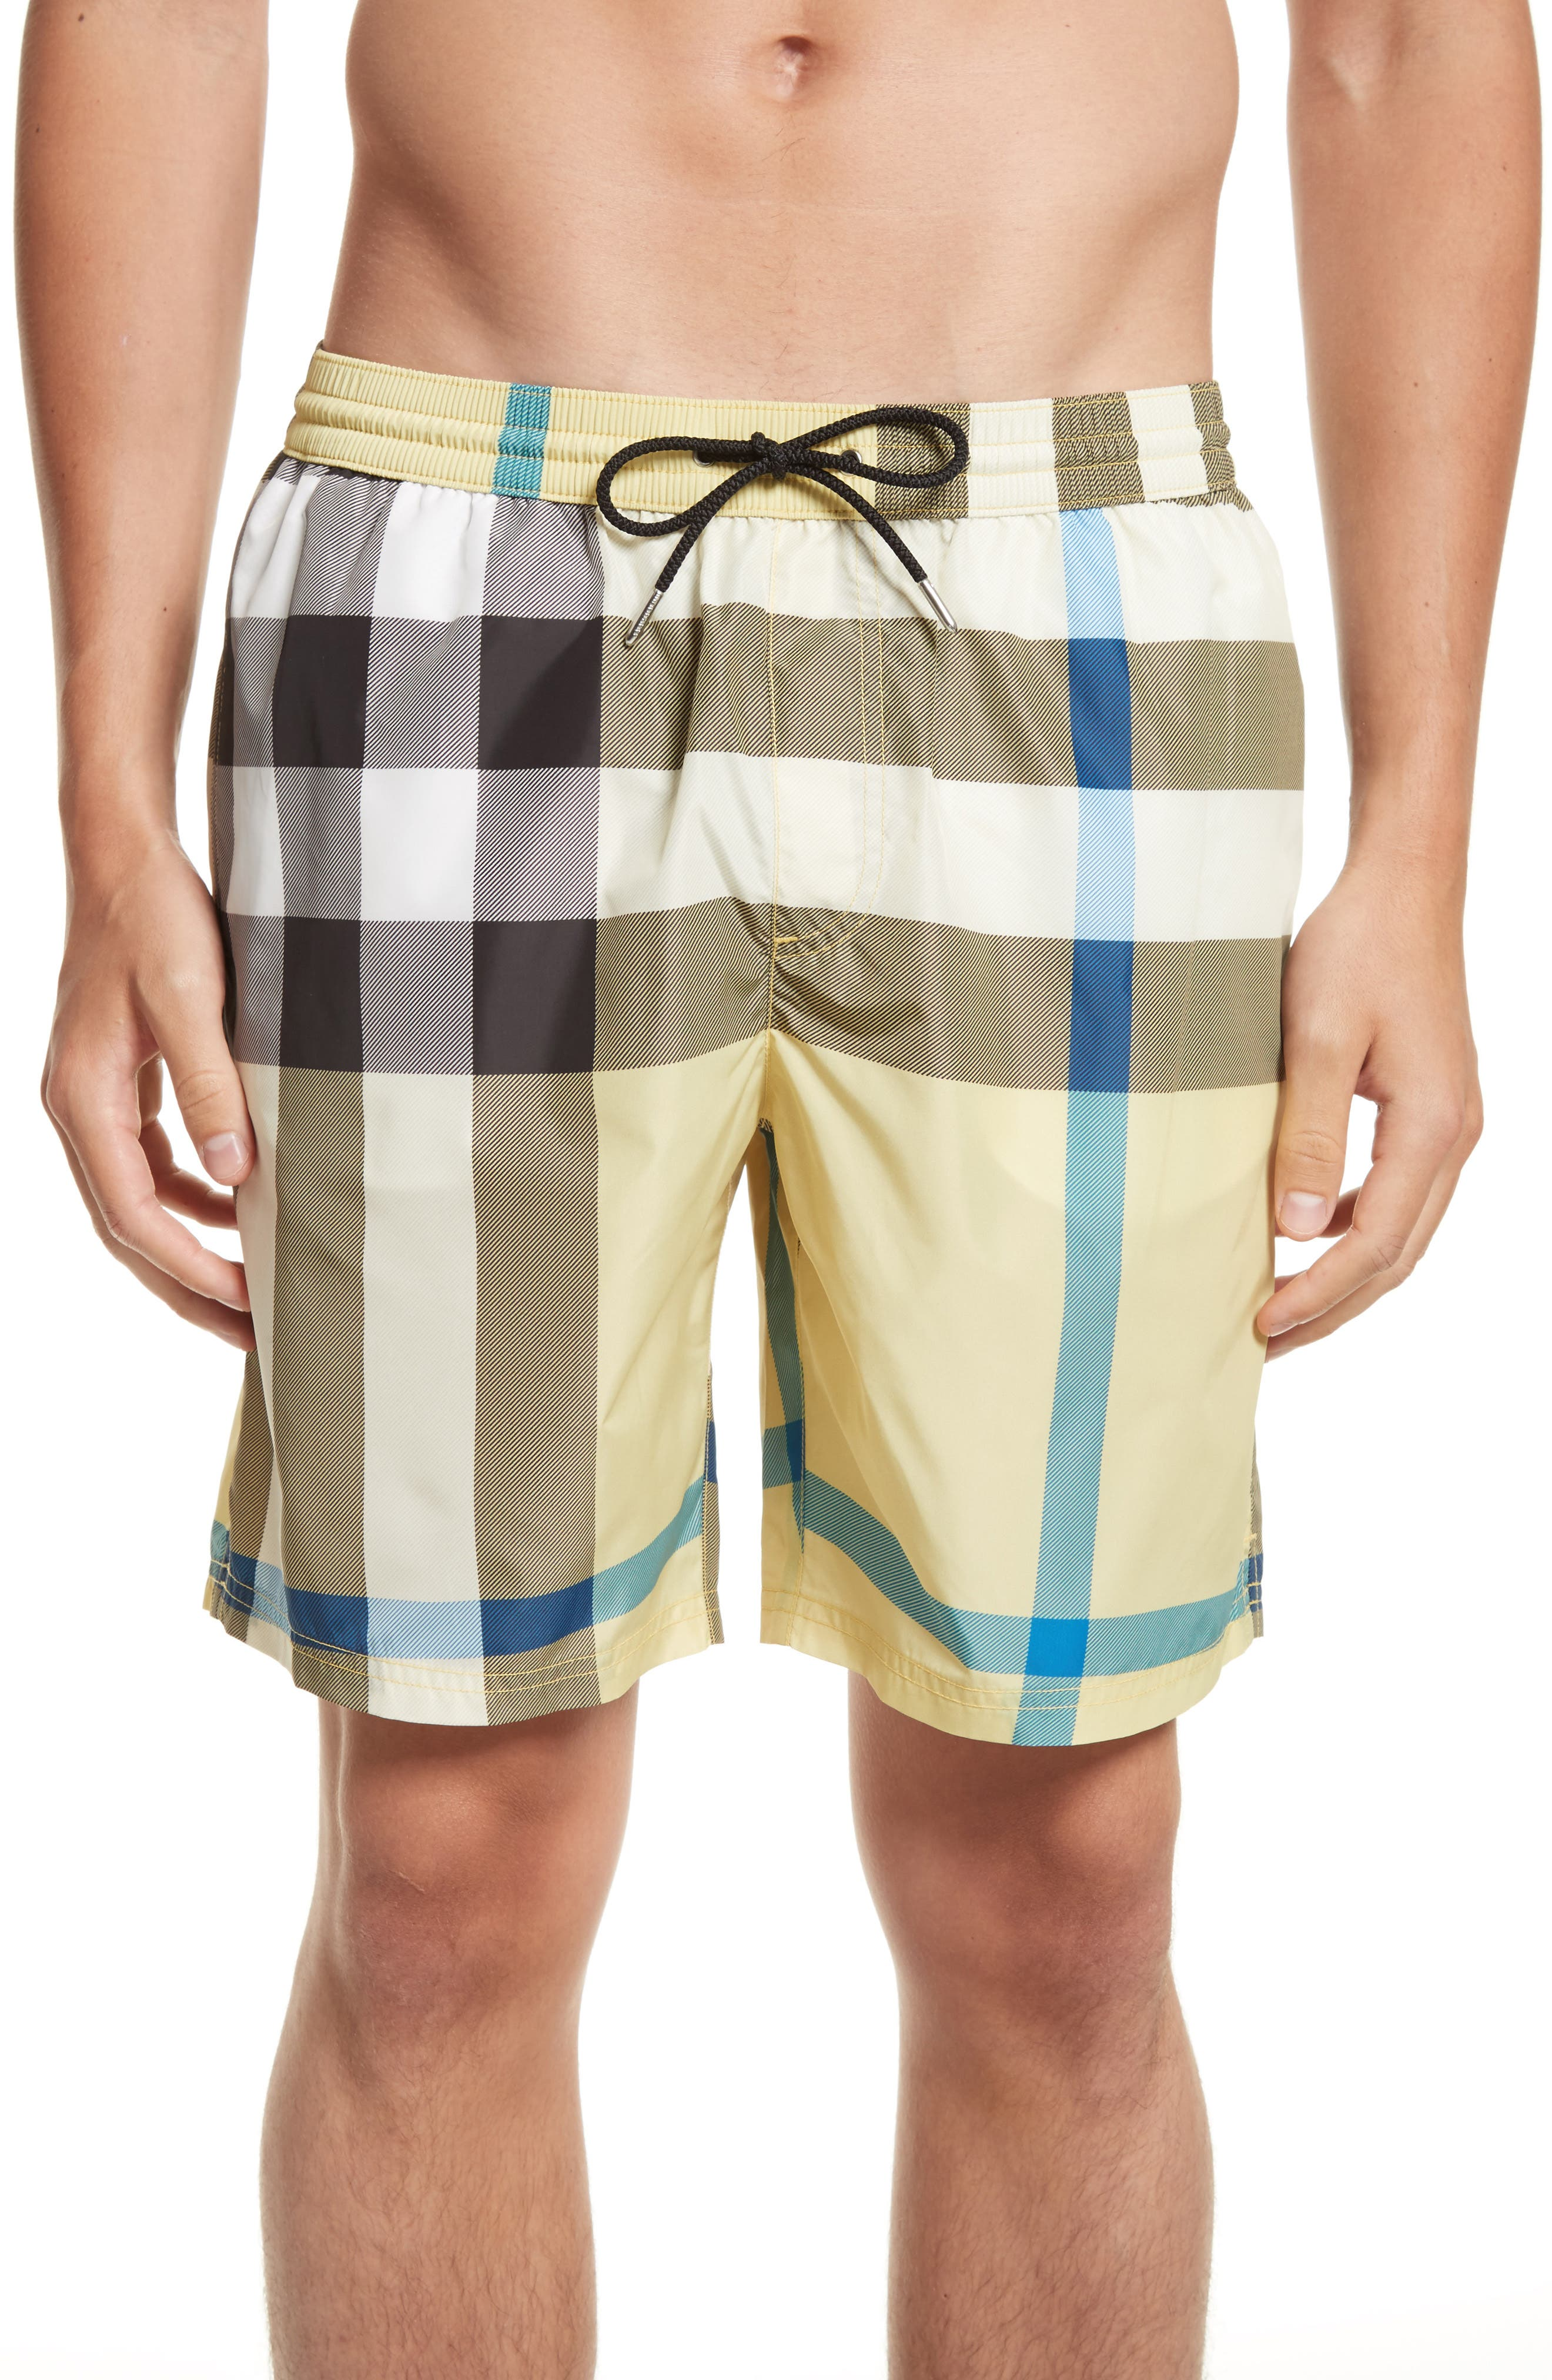 Burberry Gowers Absmk Swim Trunks